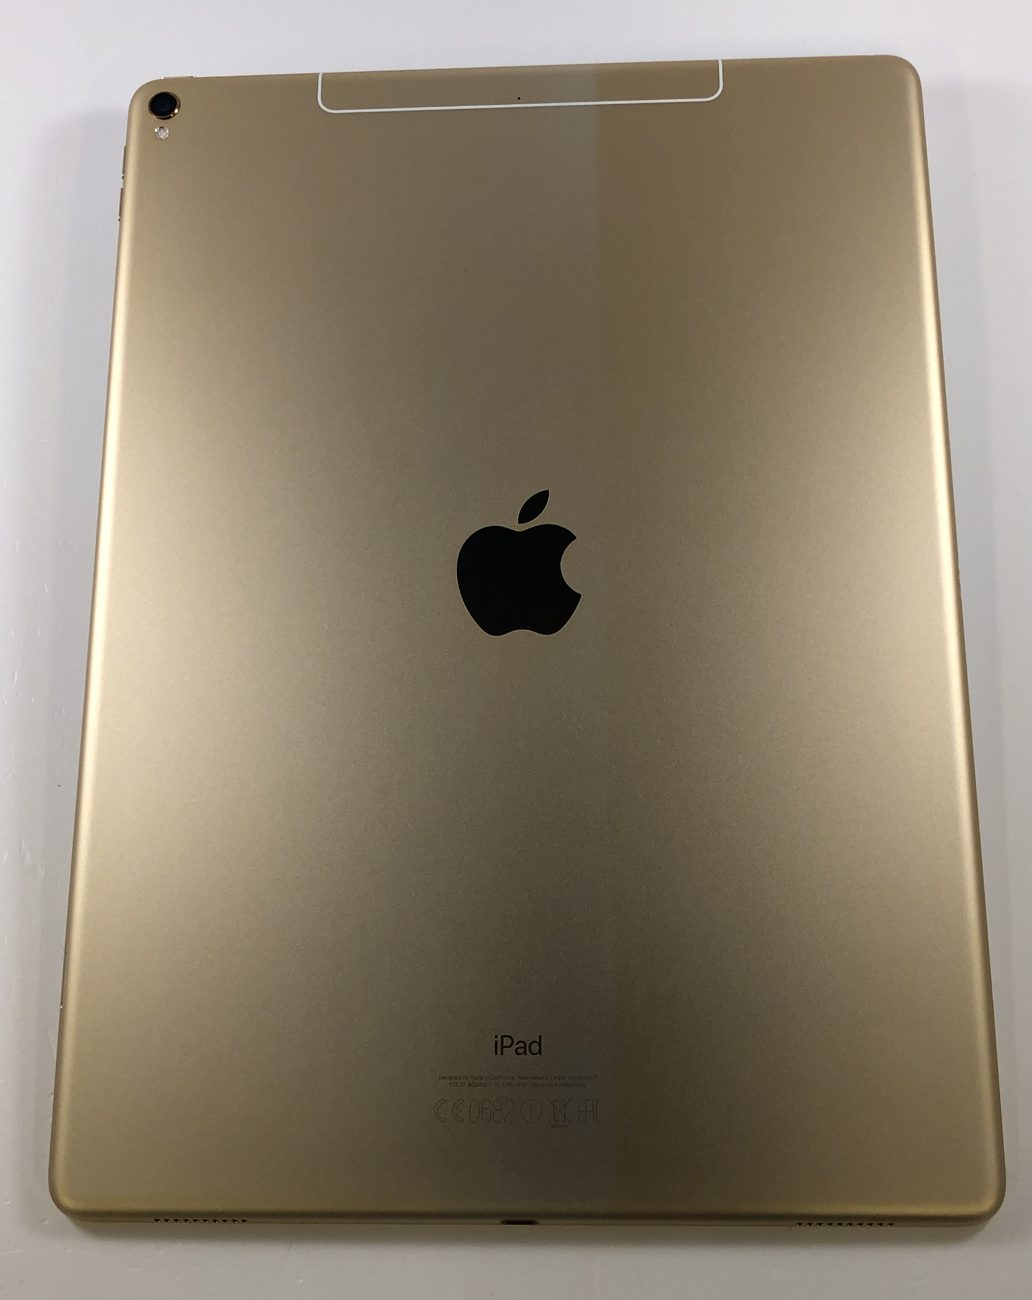 "iPad Pro 12.9"" Wi-Fi + Cellular (2nd Gen) 256GB, 256GB, Gold, image 2"